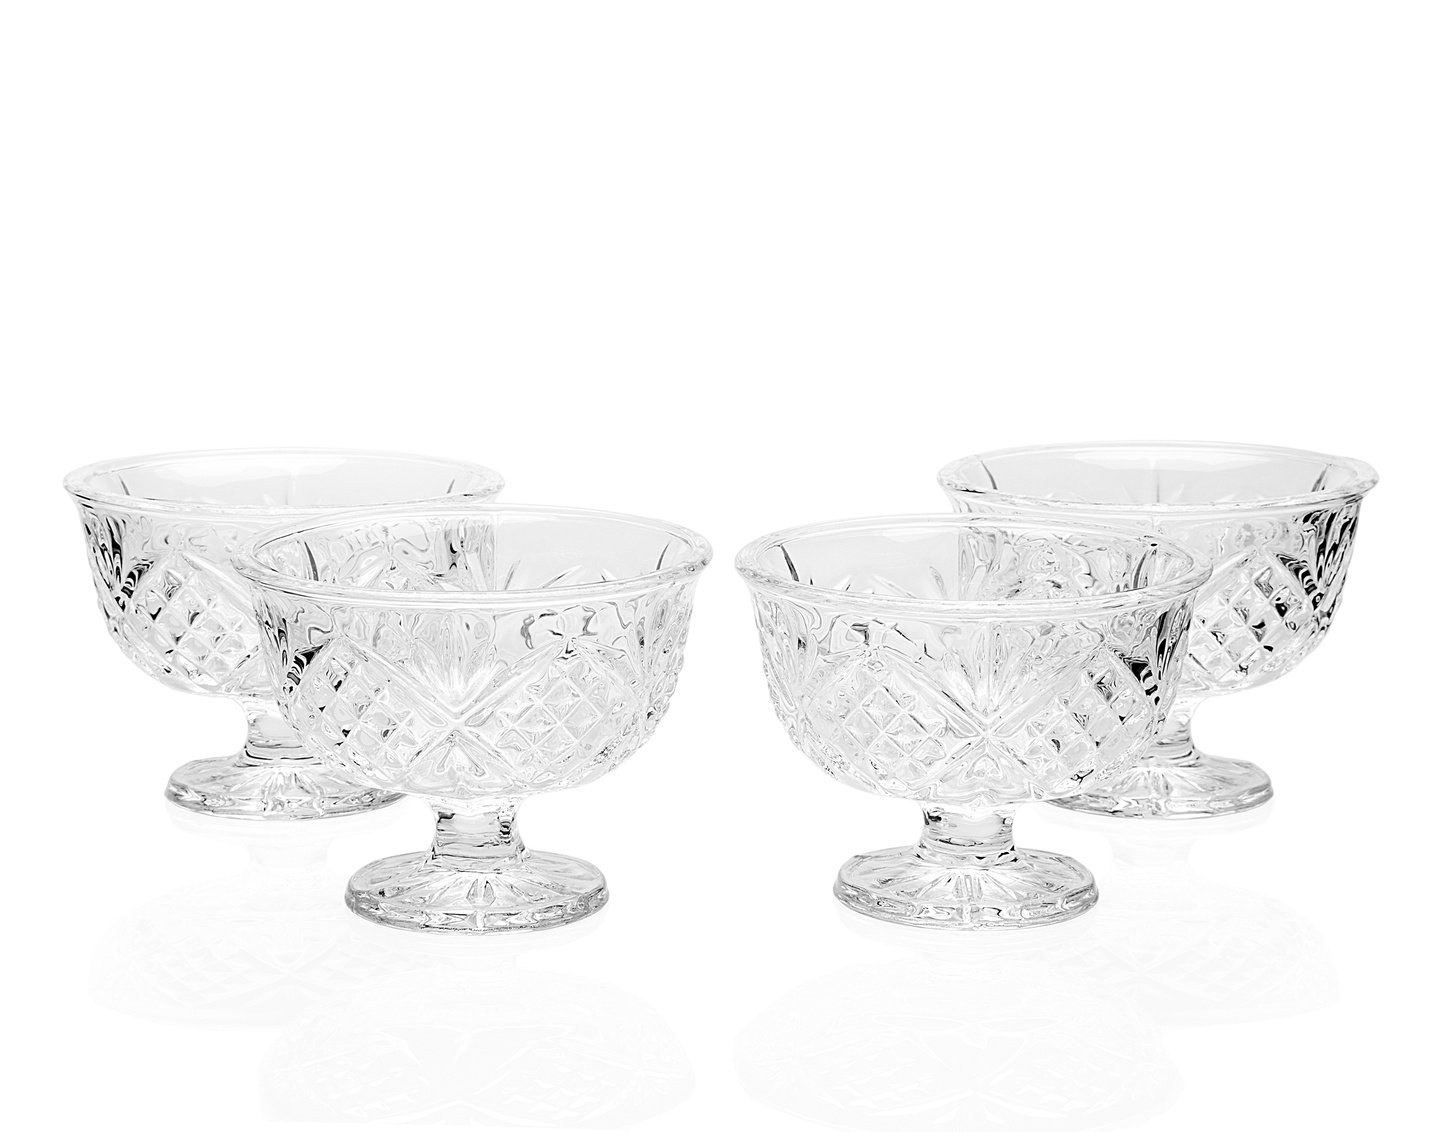 DUBLIN COLLECTION SET OF 4 CRYSTAL FOOTED ICE CREAM BOWLS - ice cream server Godinger Silver Art SYNCHKG034071